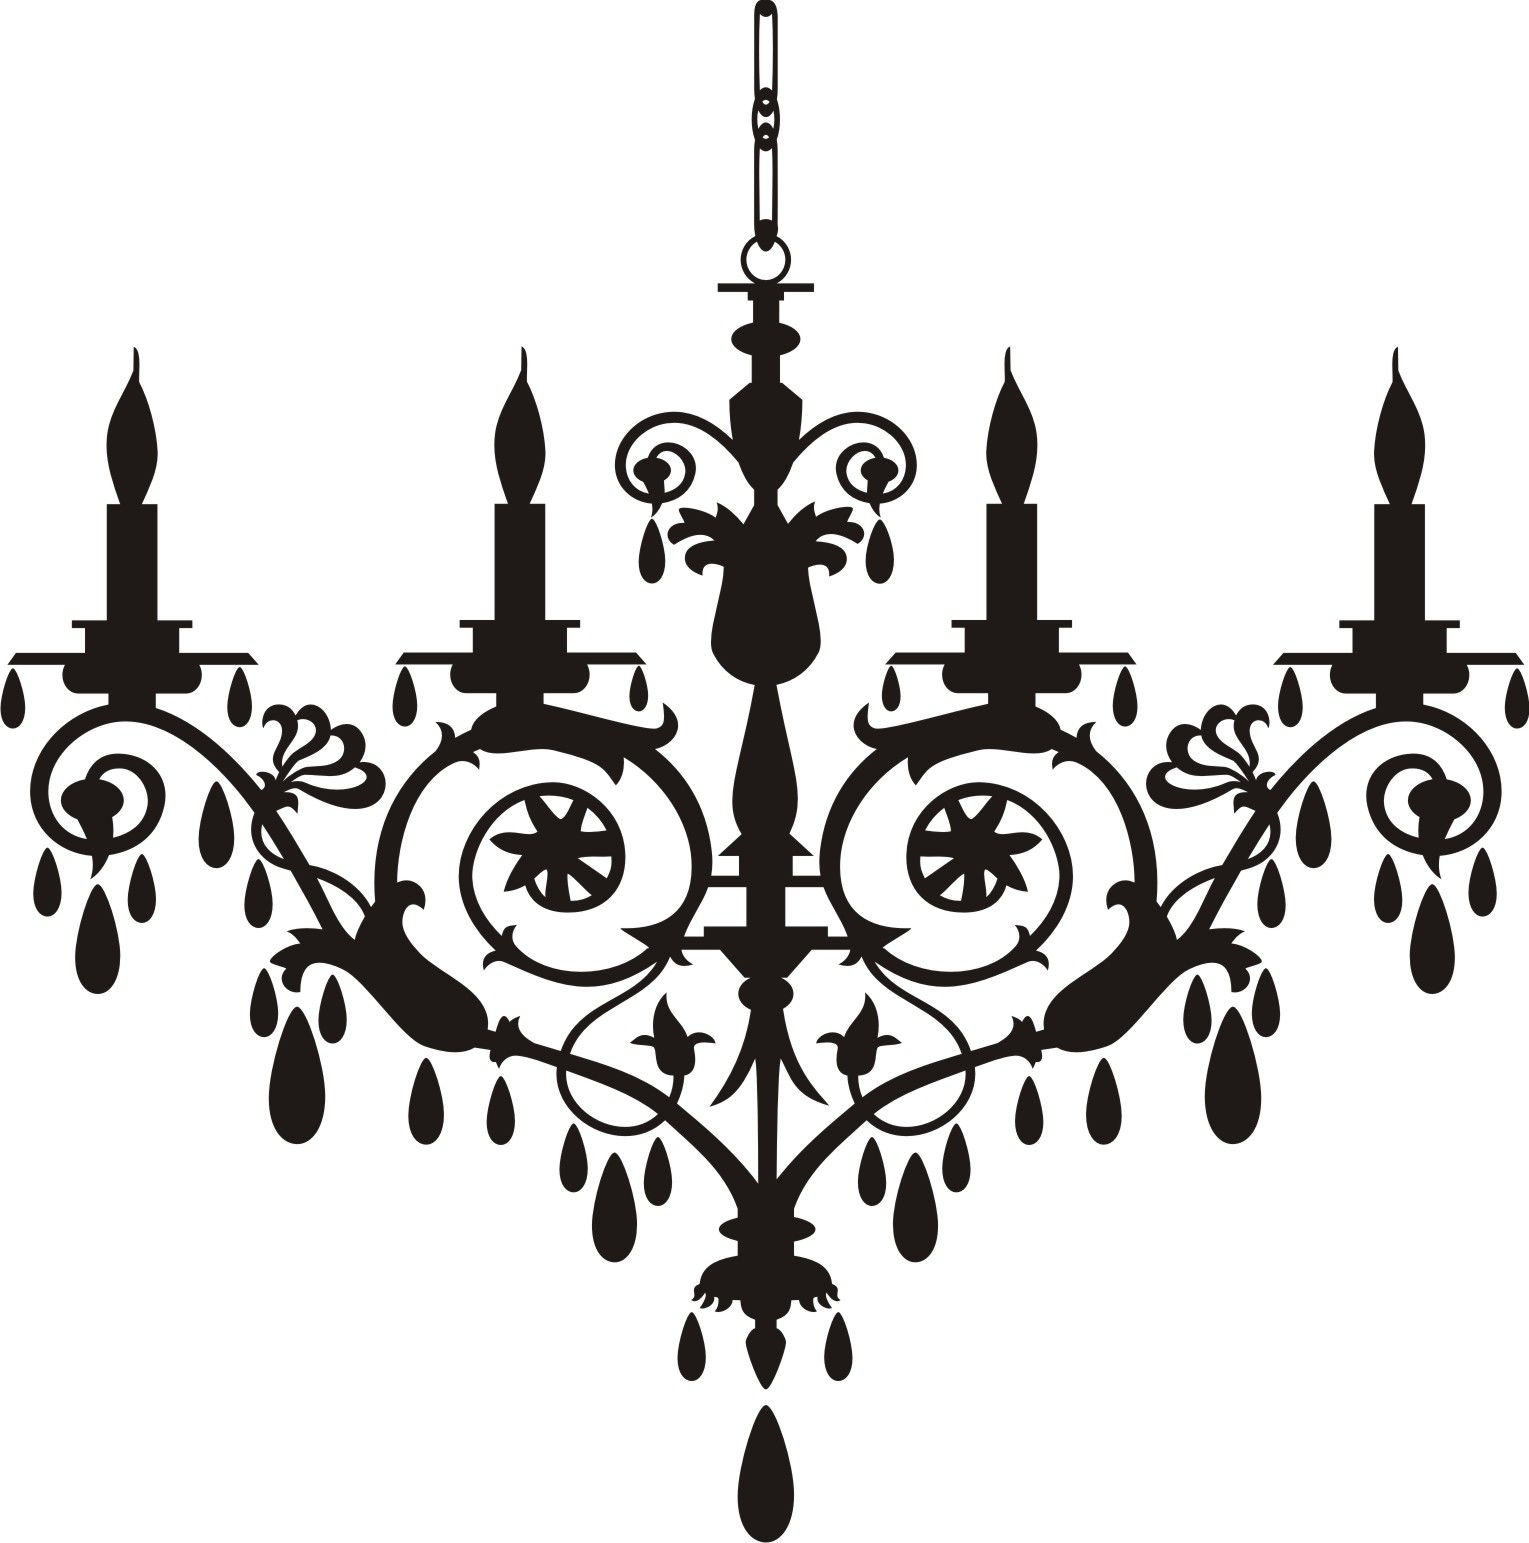 Hanging Lamp Vector: Pin By Rio Netheroez On Chandelier Ideas